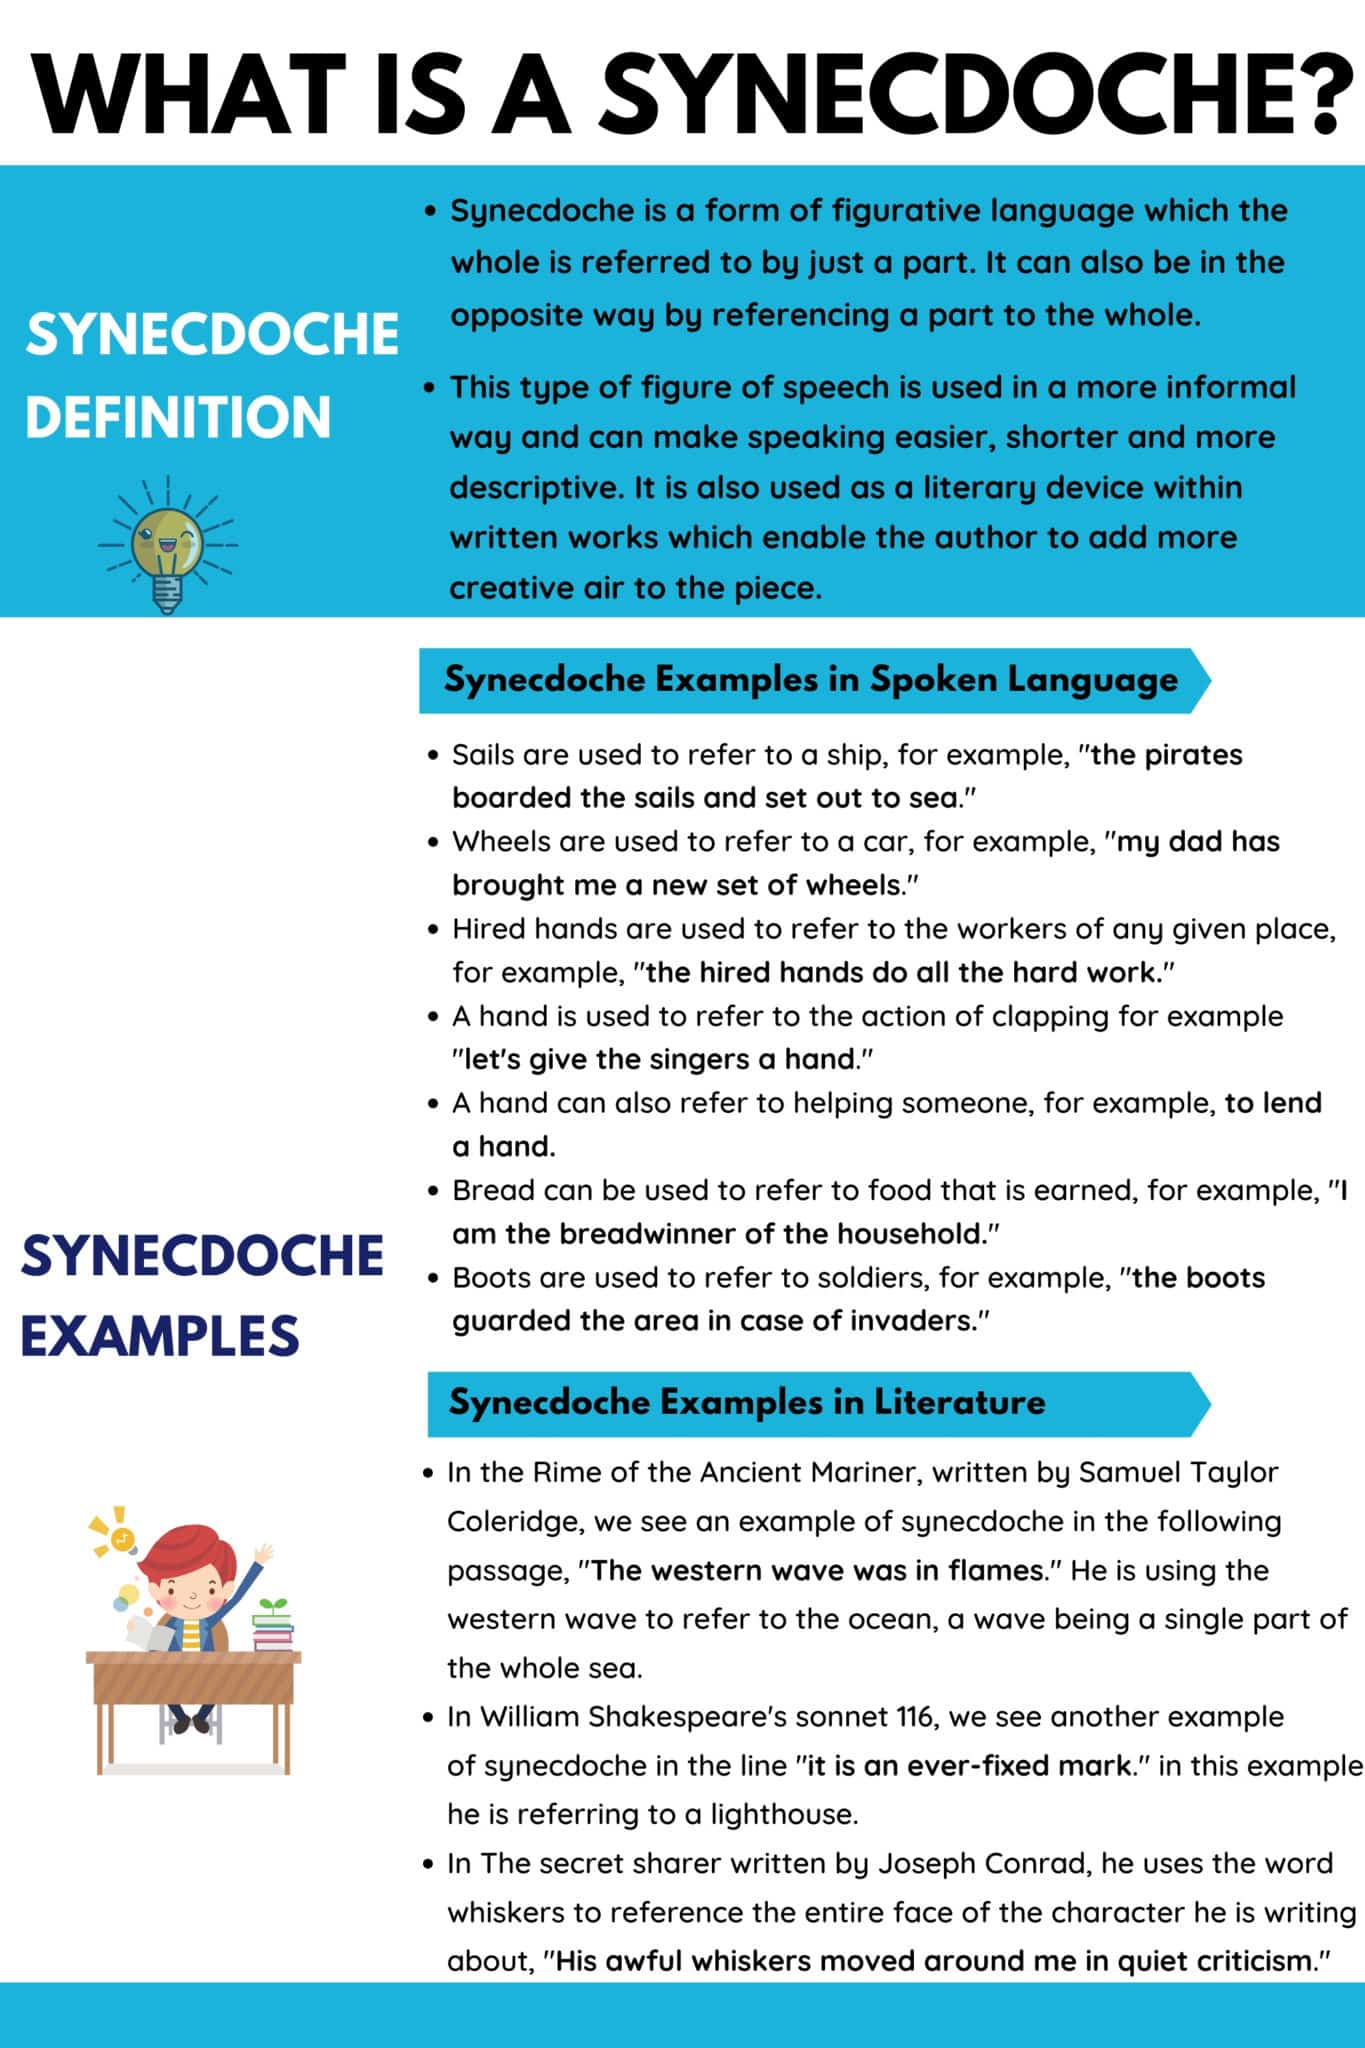 Synecdoche: Definition and Useful Examples of Synecdoche in Conversation and Literature